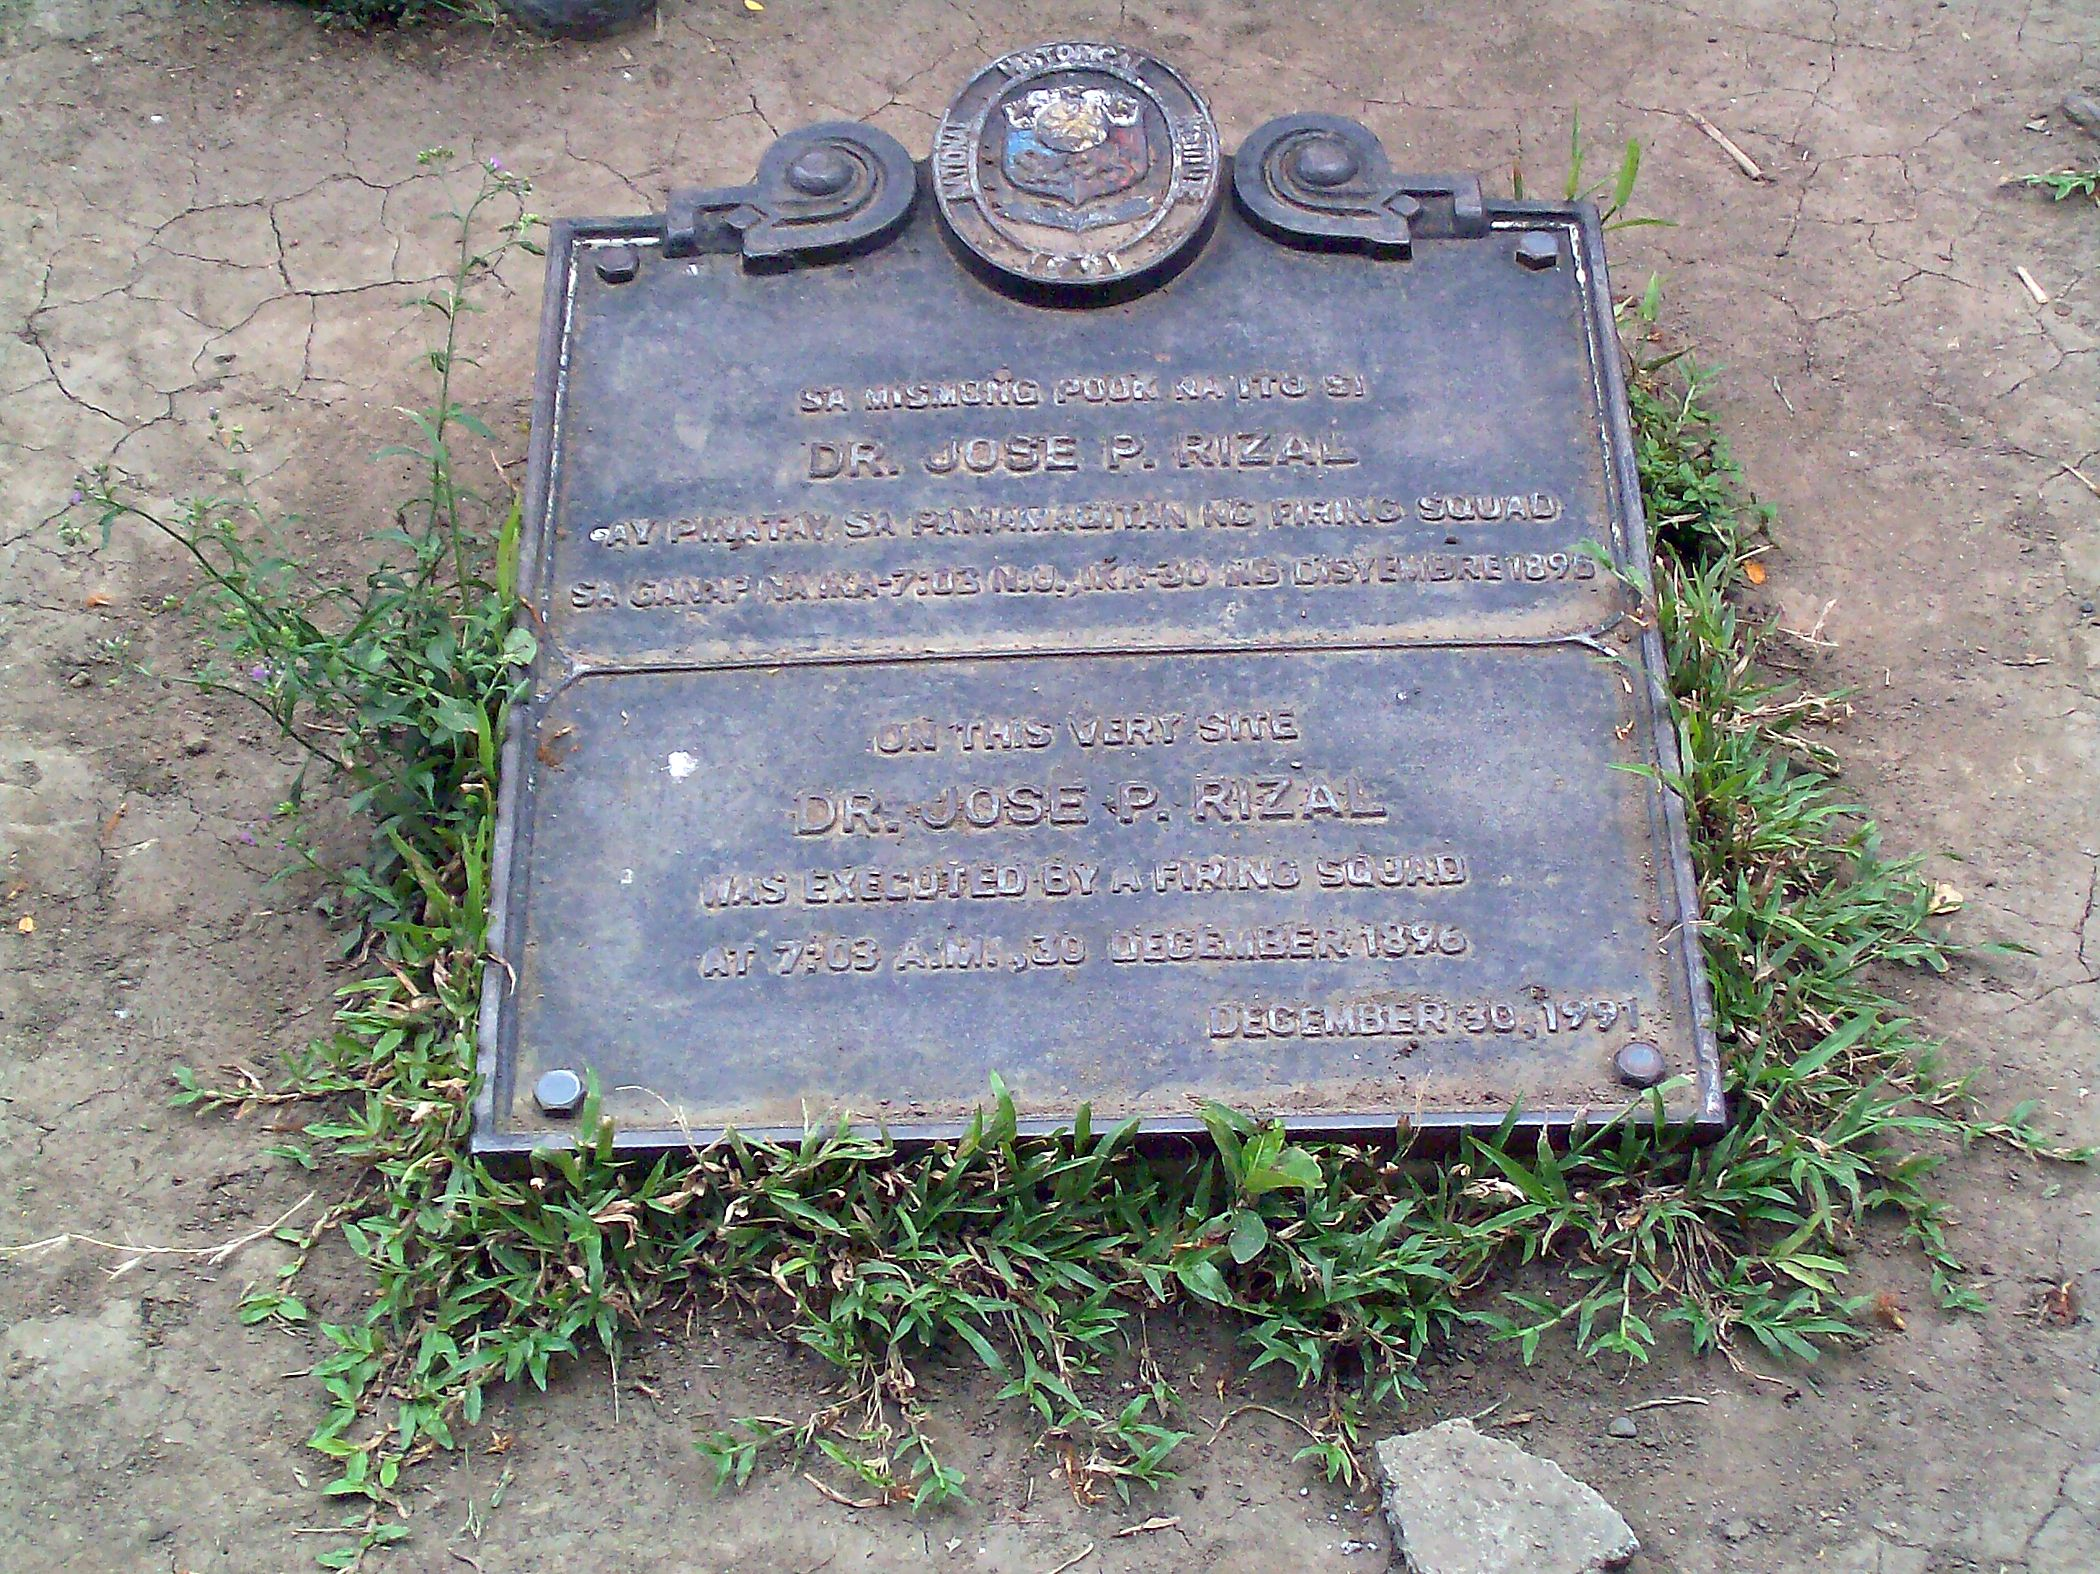 execution of dr jose rizal